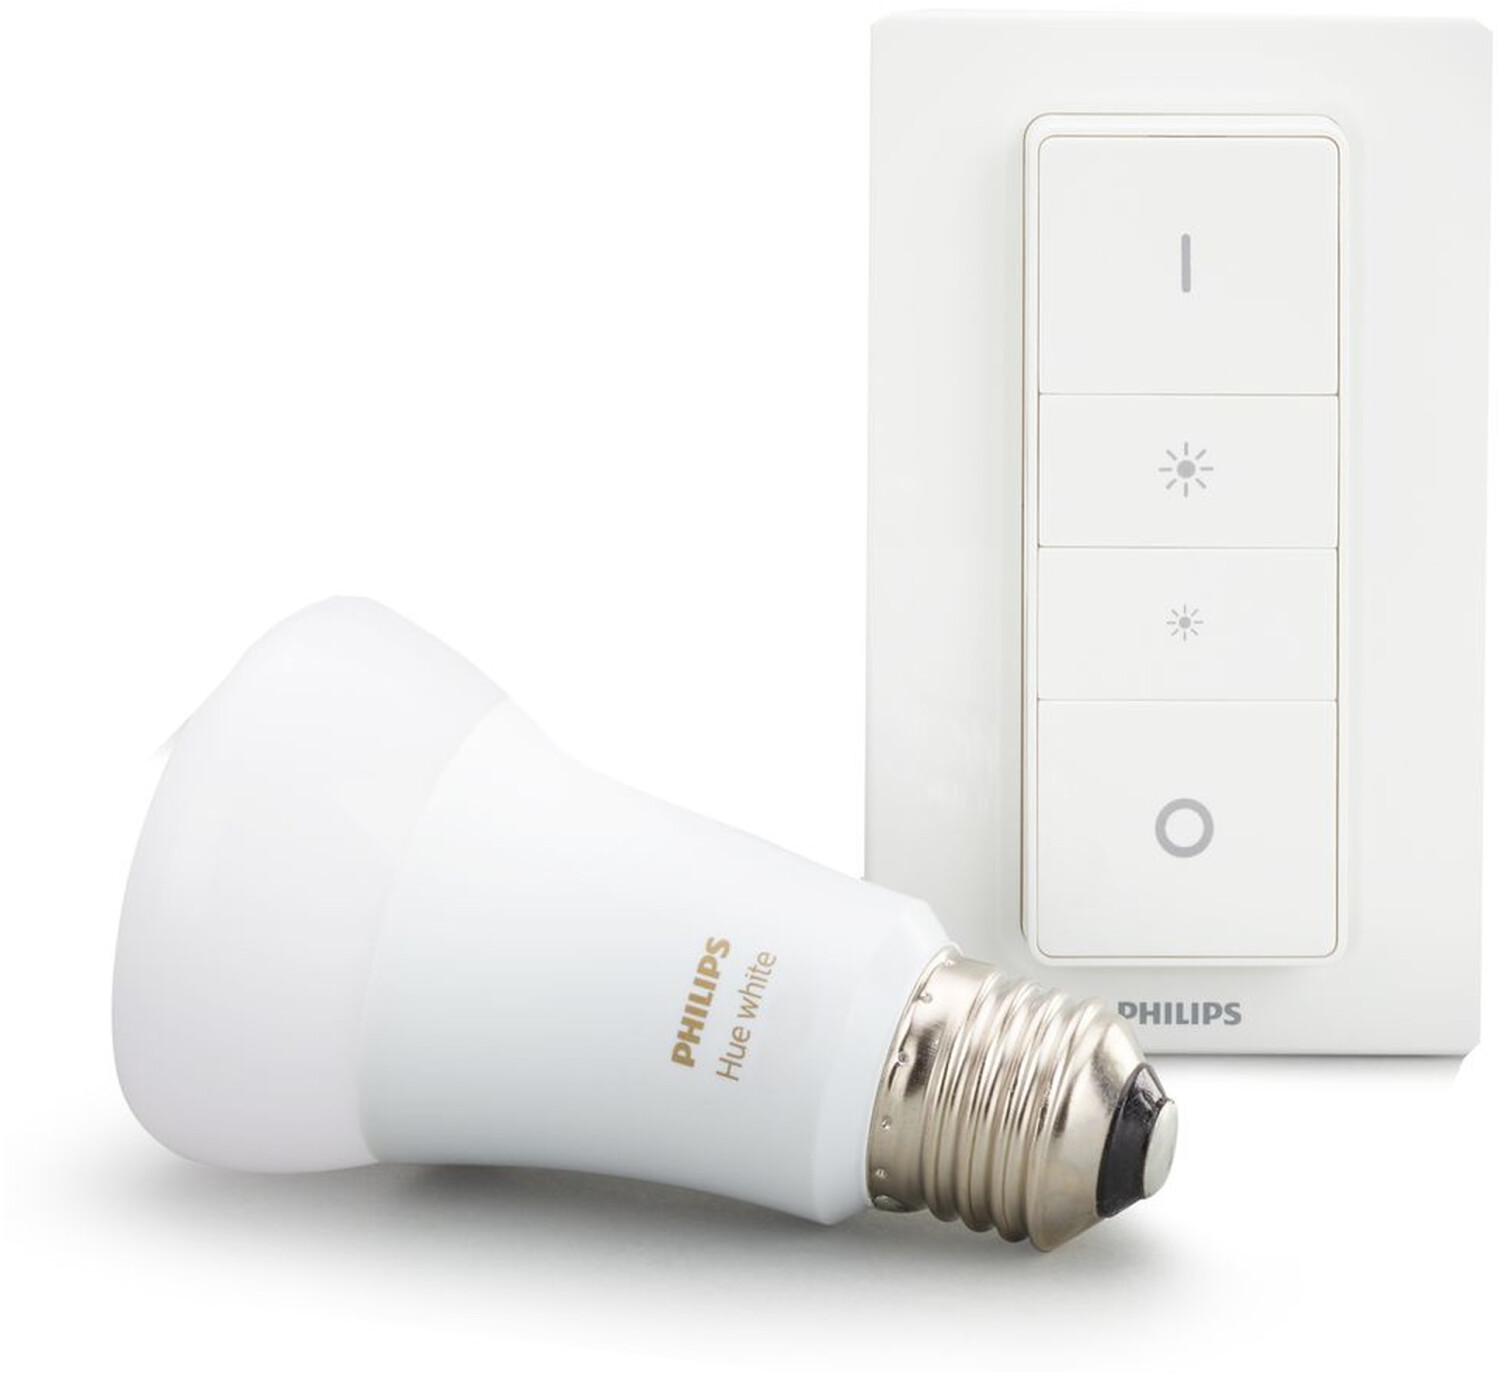 Philips Hue E27 Wireless Dimming Kit Blutooth